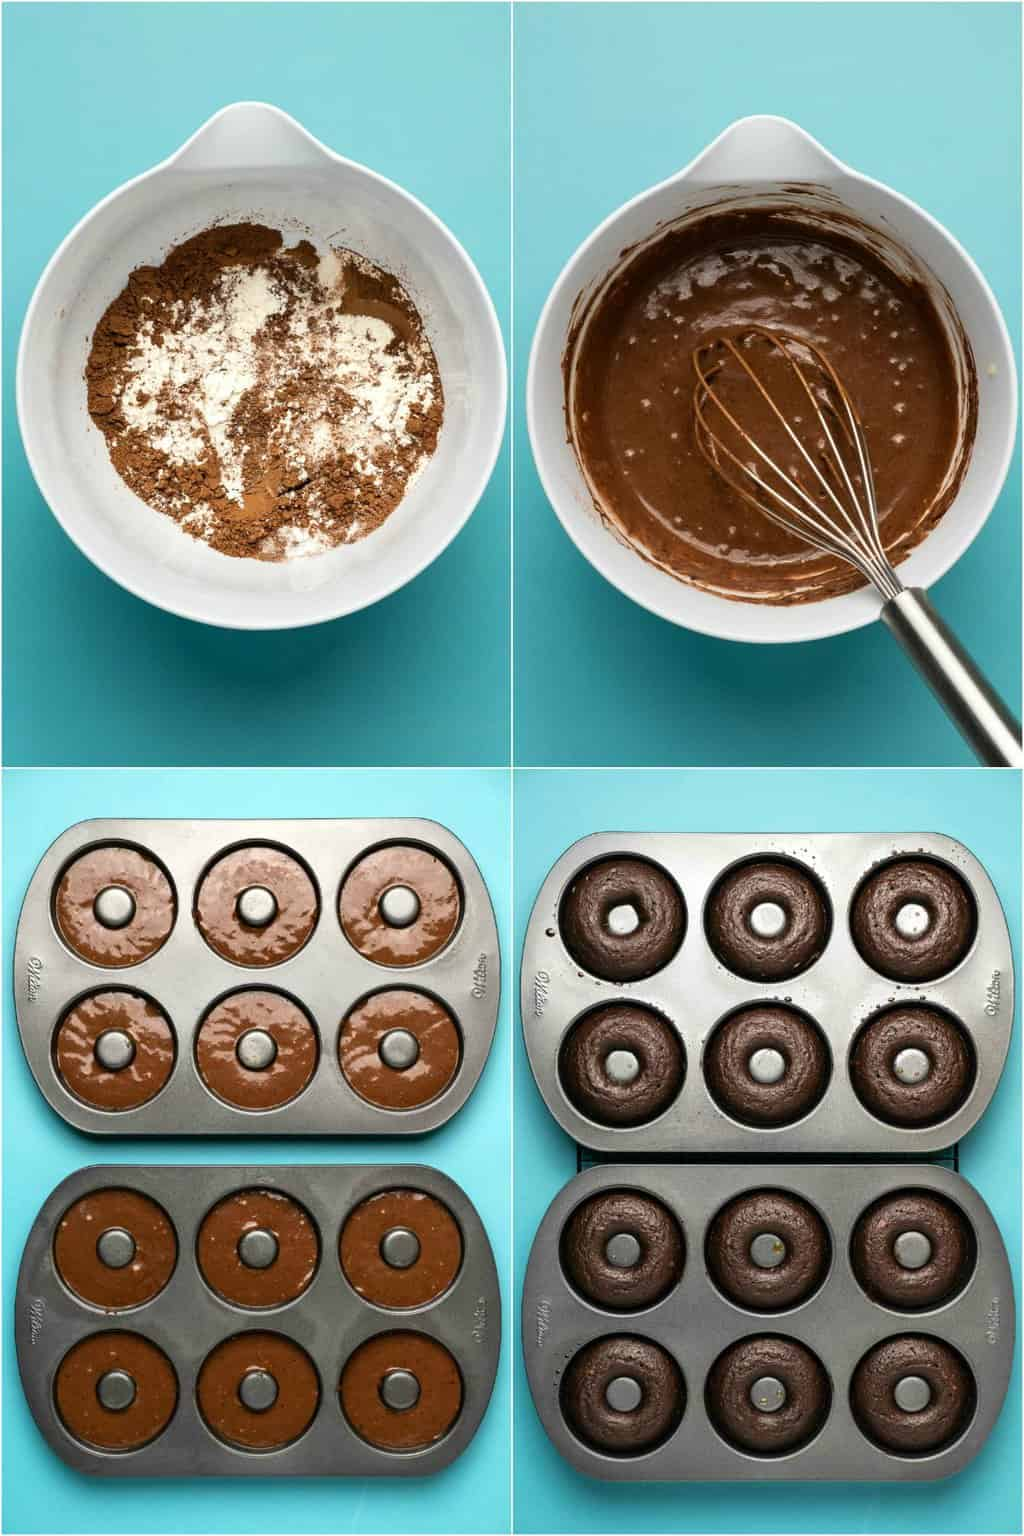 Step by step process photo collage of making vegan chocolate donuts.